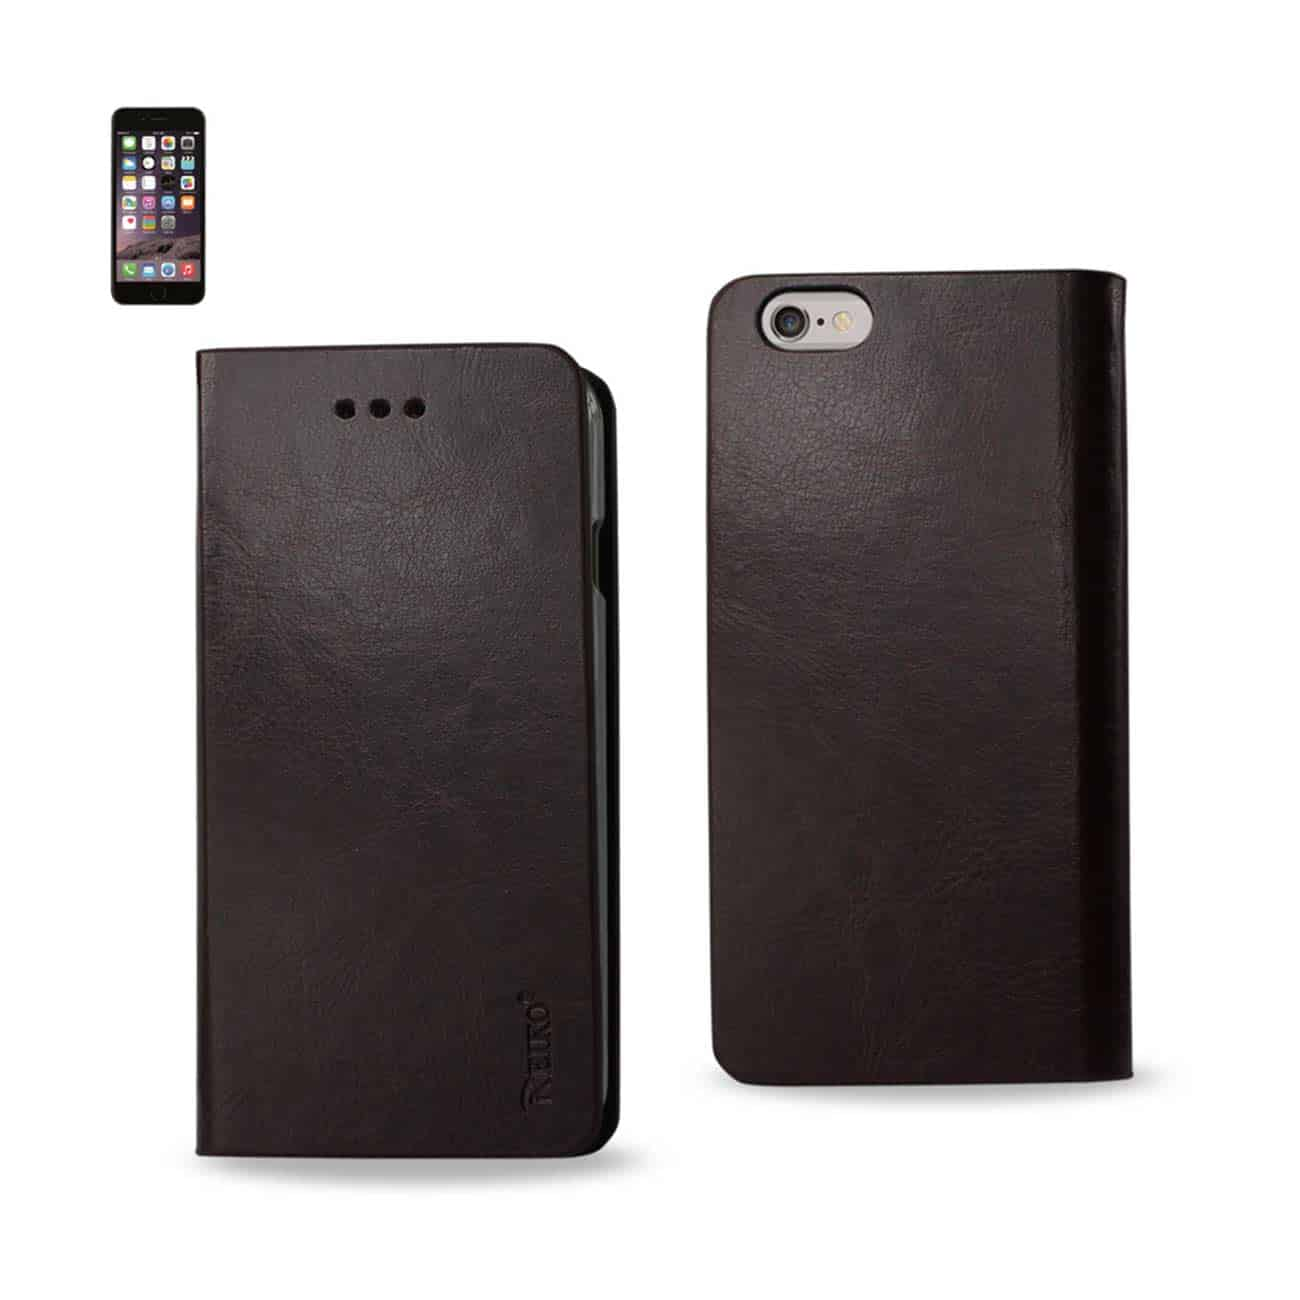 IPHONE 6 PLUS FLIP FOLIO CASE WITH CARD HOLDER IN BROWN